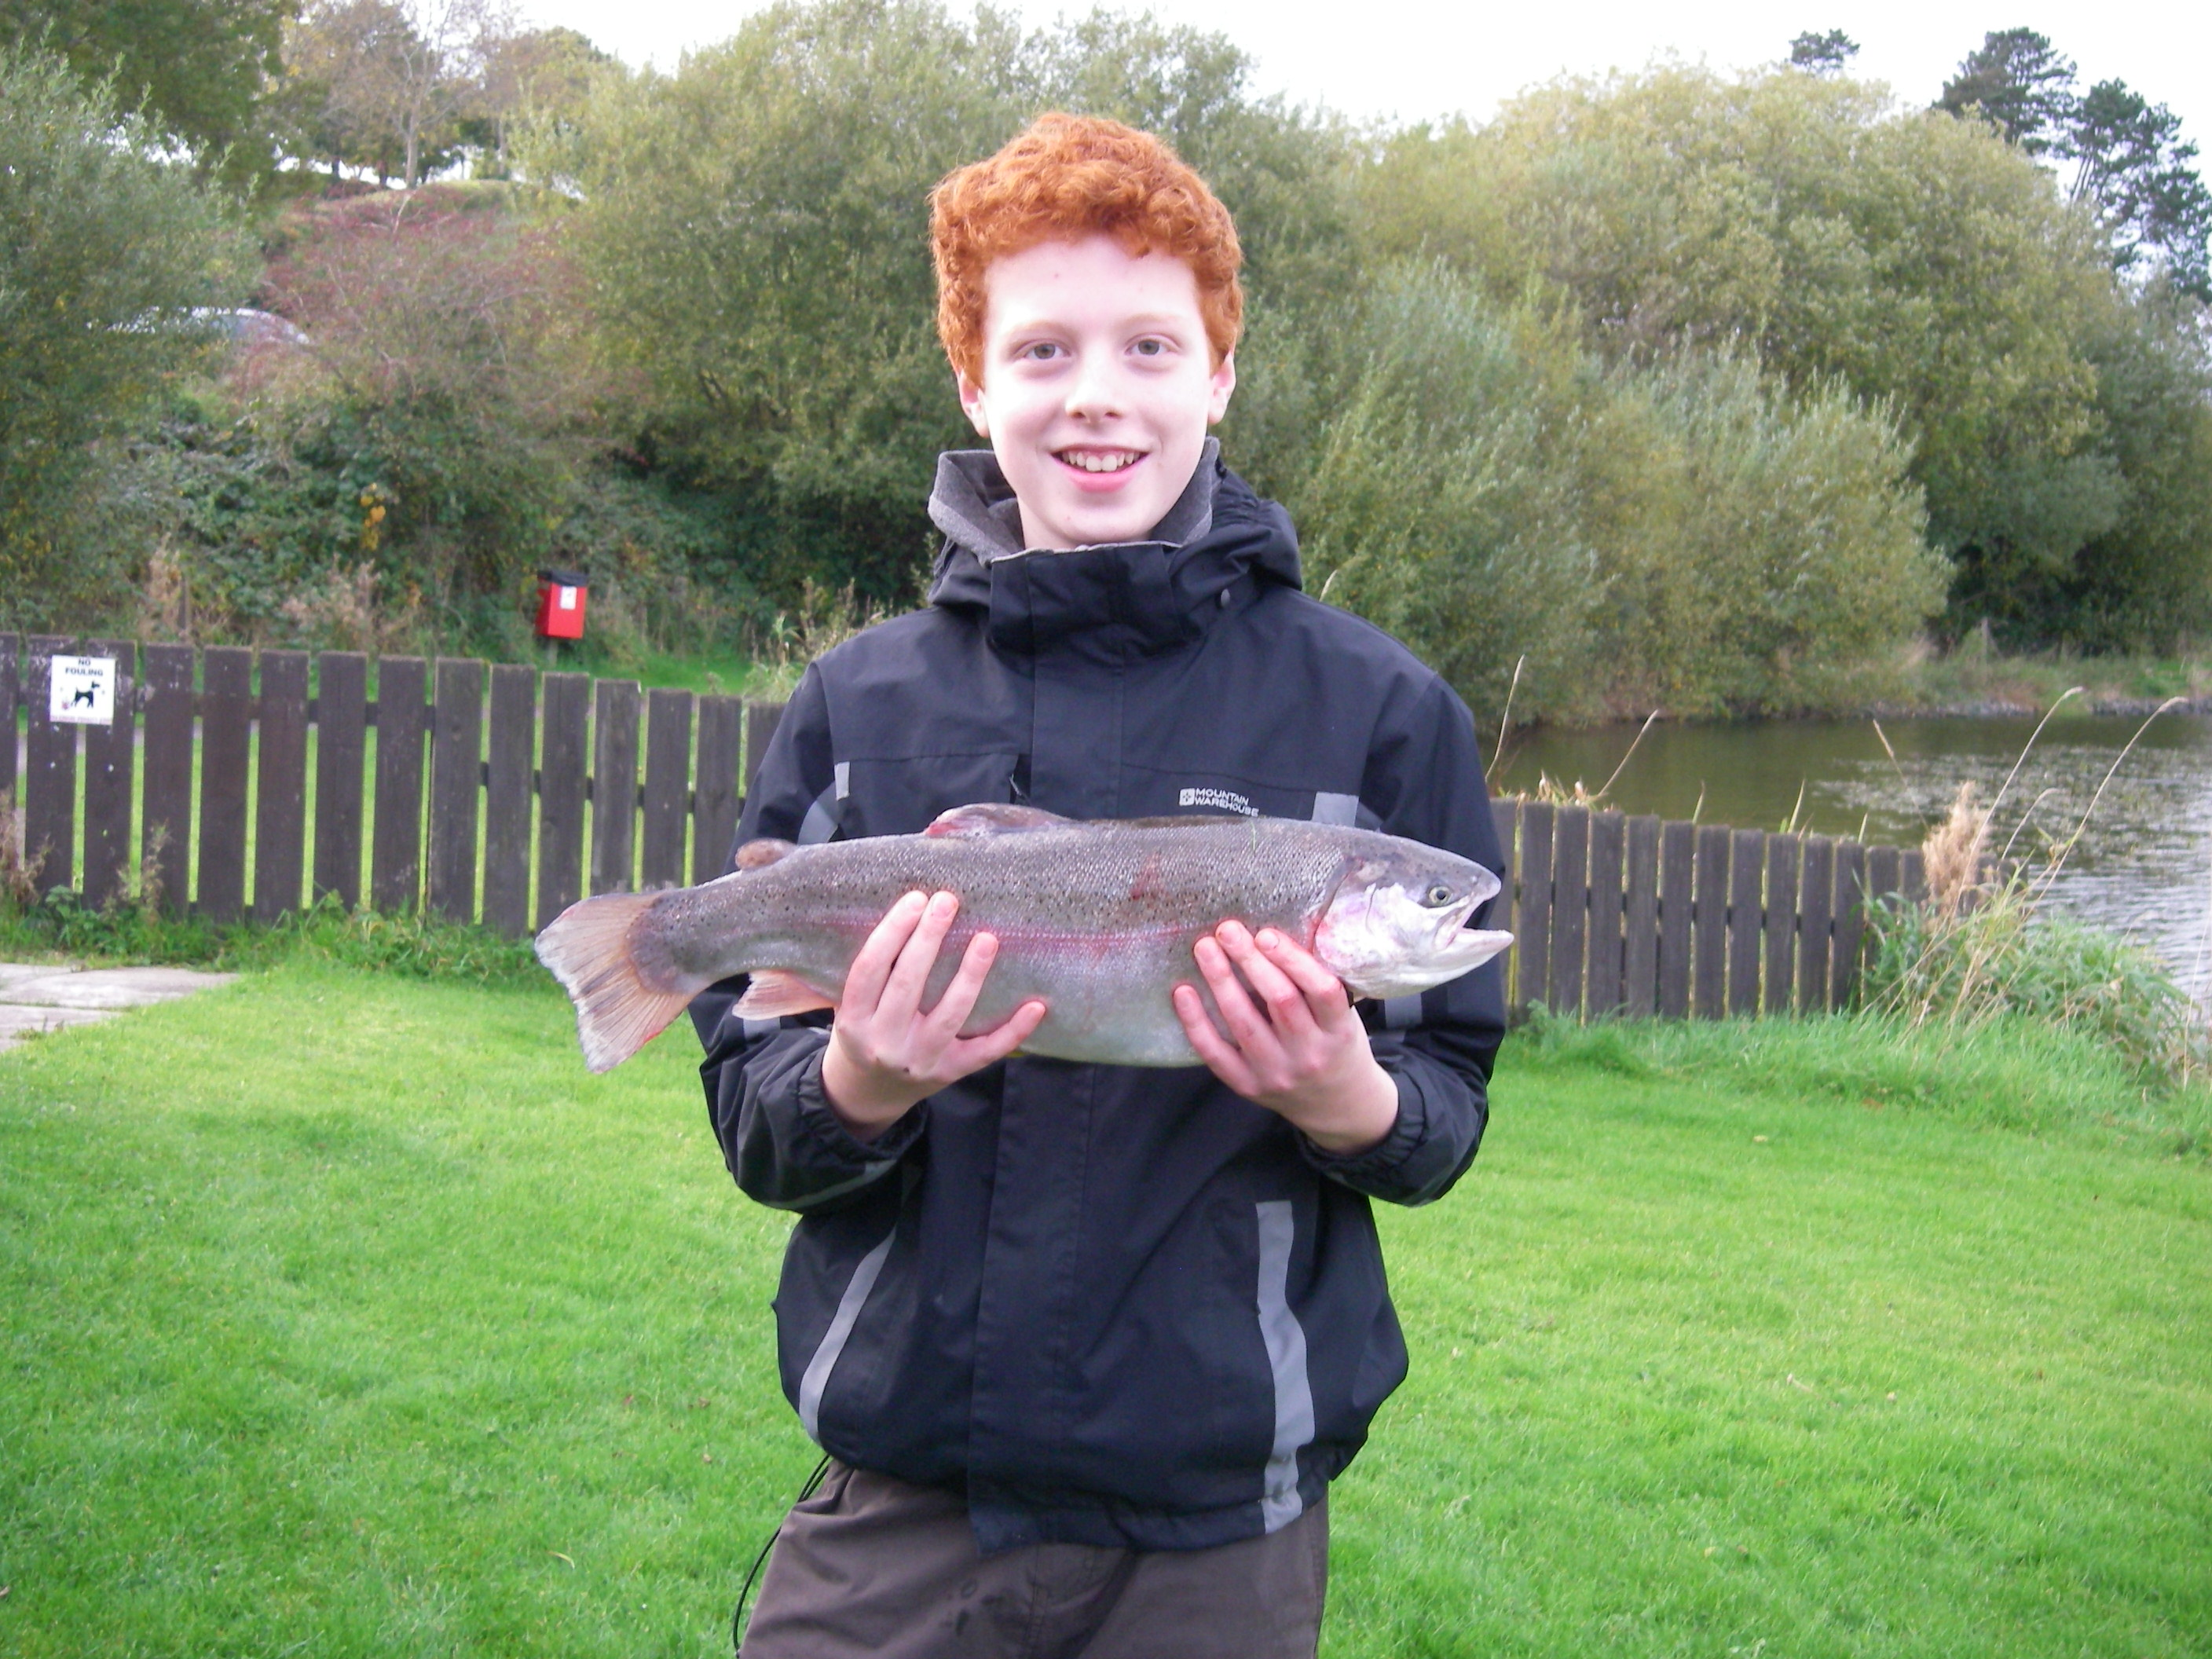 BAC Juvenile Angler with a Rainbow Trout 4lbs 14 ozs caught at the Corbet Lough on 22 October 2016